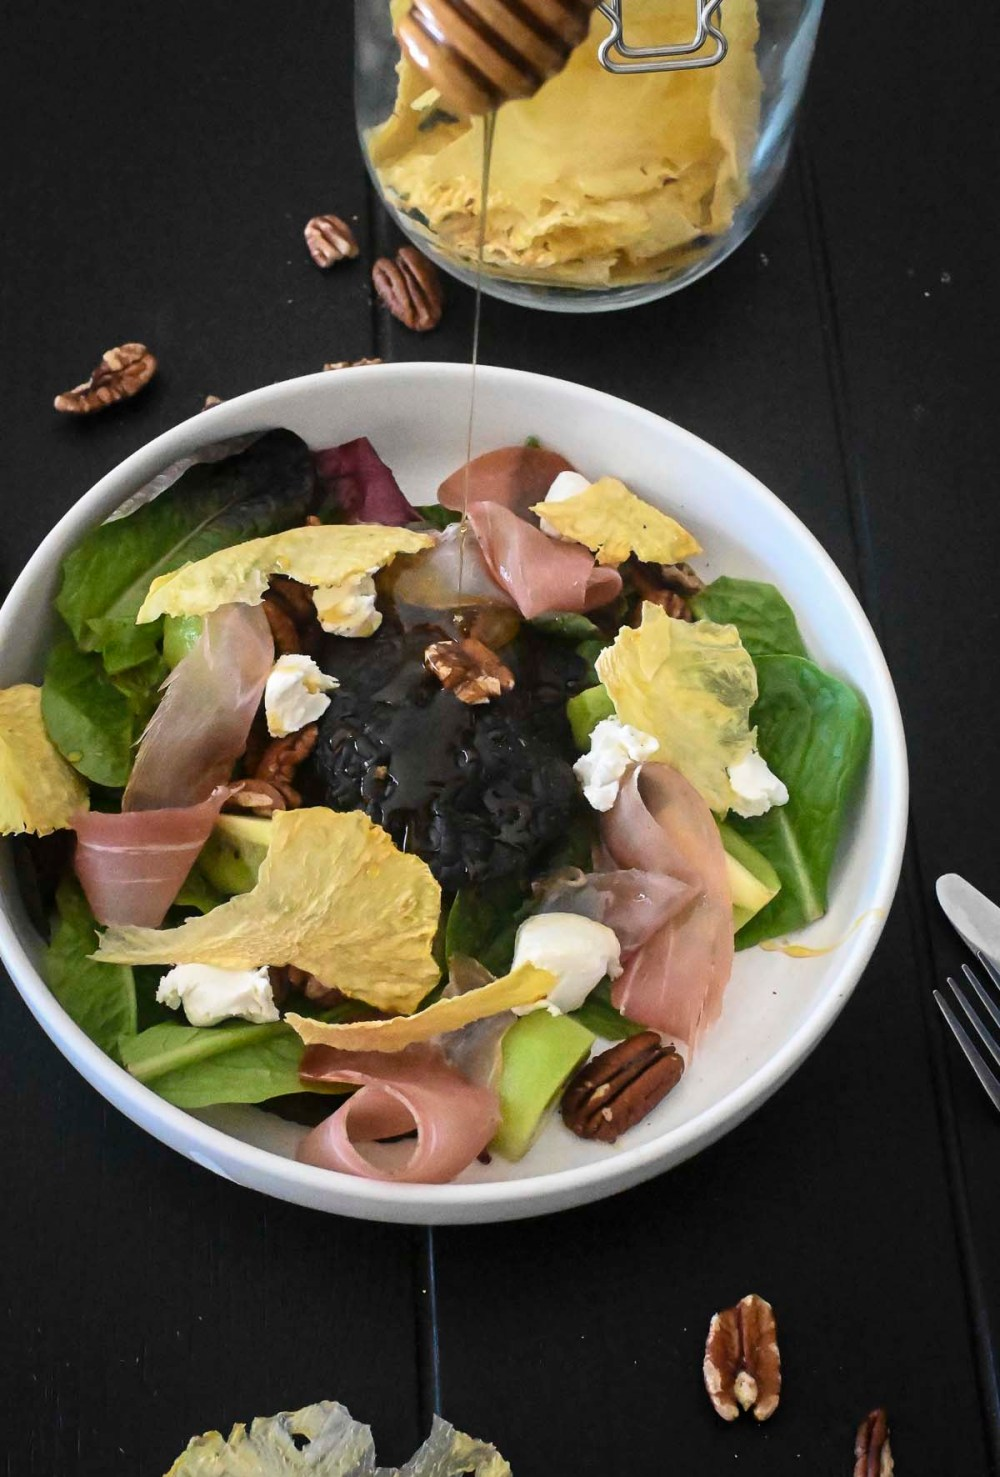 prosciutto and pineapple salad on table